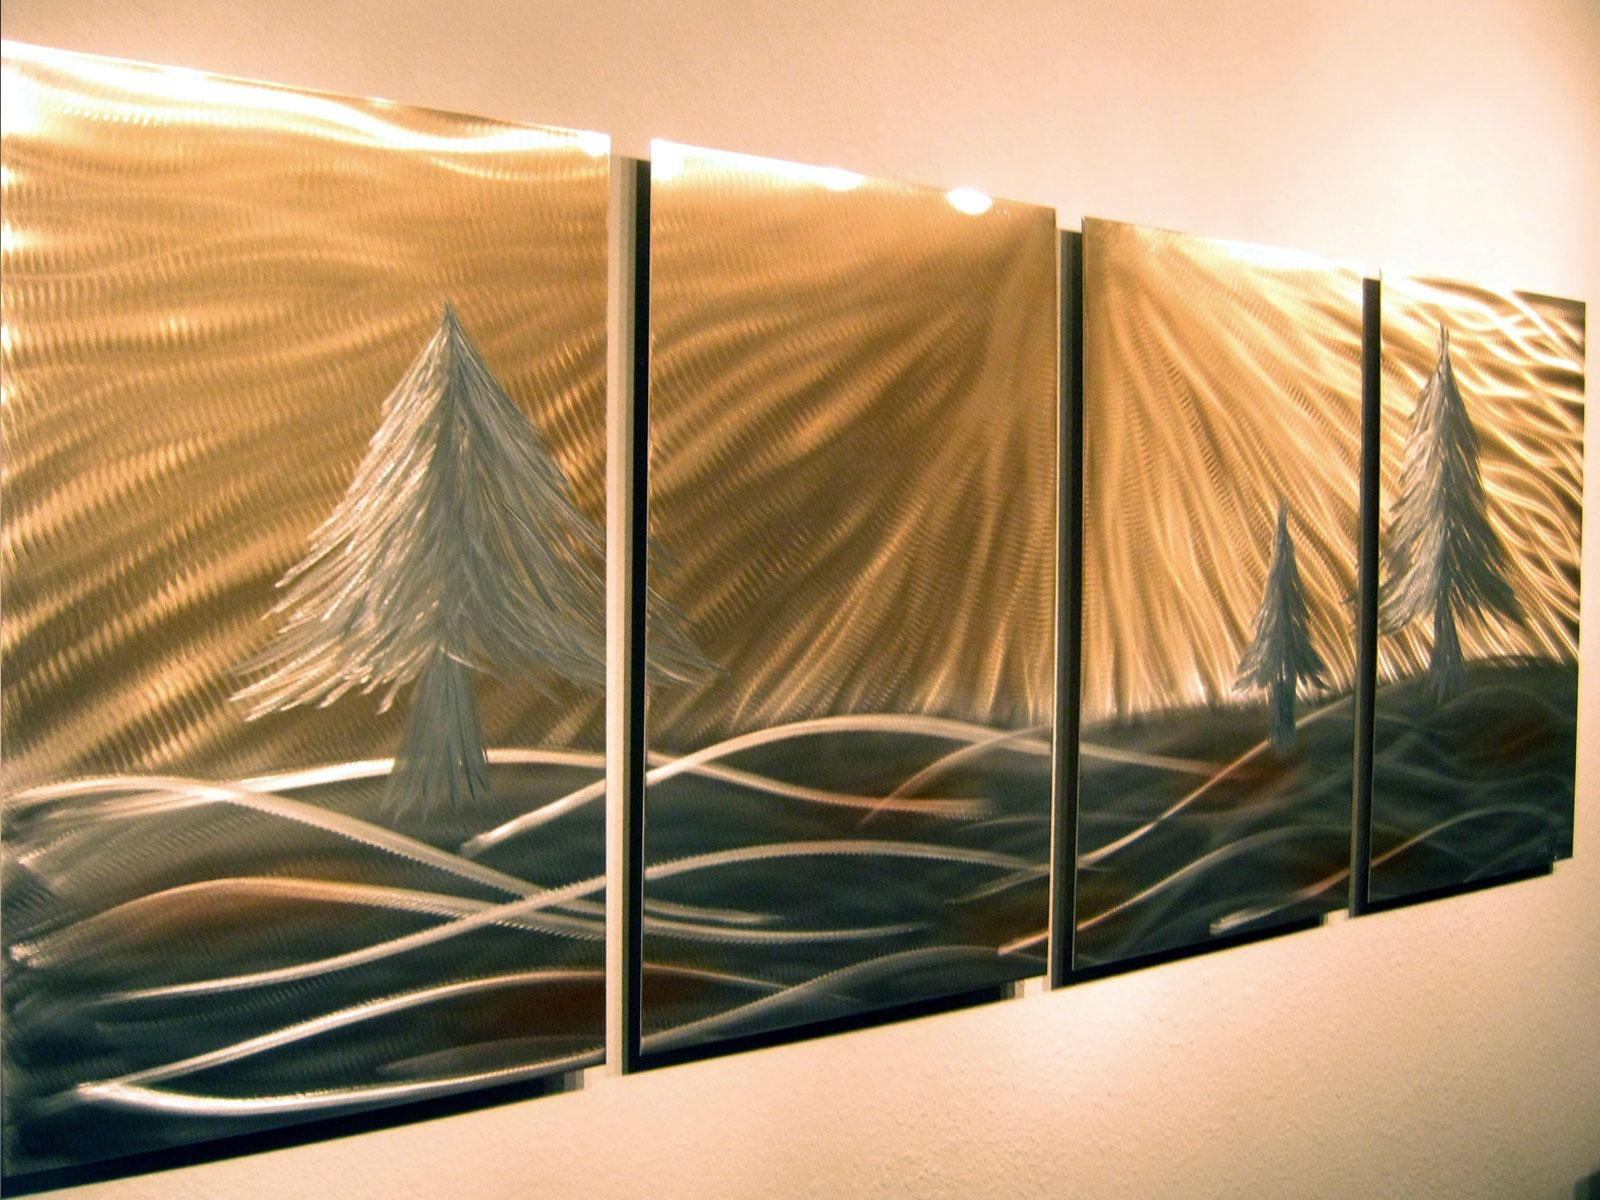 3 Pine Trees – Abstract Metal Wall Art Contemporary Modern Decor Inside Pine Tree Metal Wall Art (View 13 of 20)